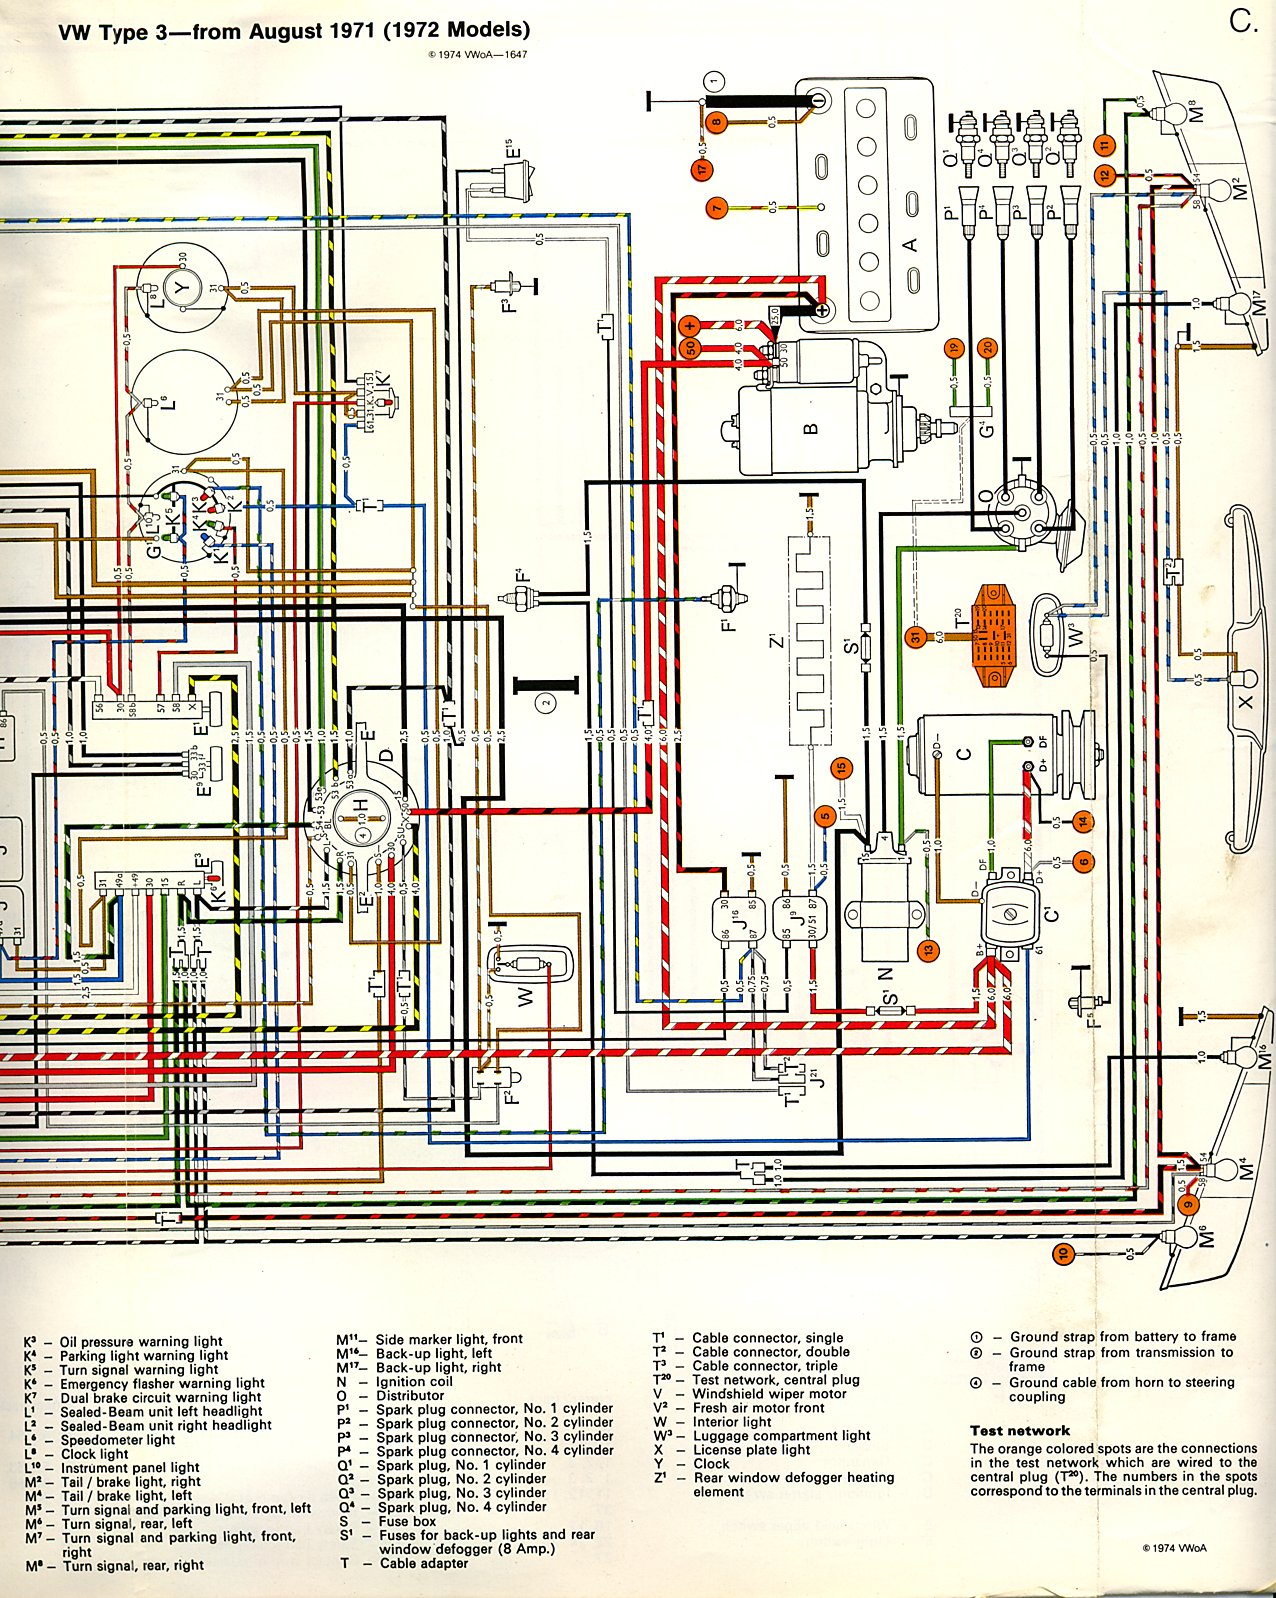 91 nissan pick up wiring diagram lights volkswagen up wiring diagram thesamba.com :: type 3 wiring diagrams